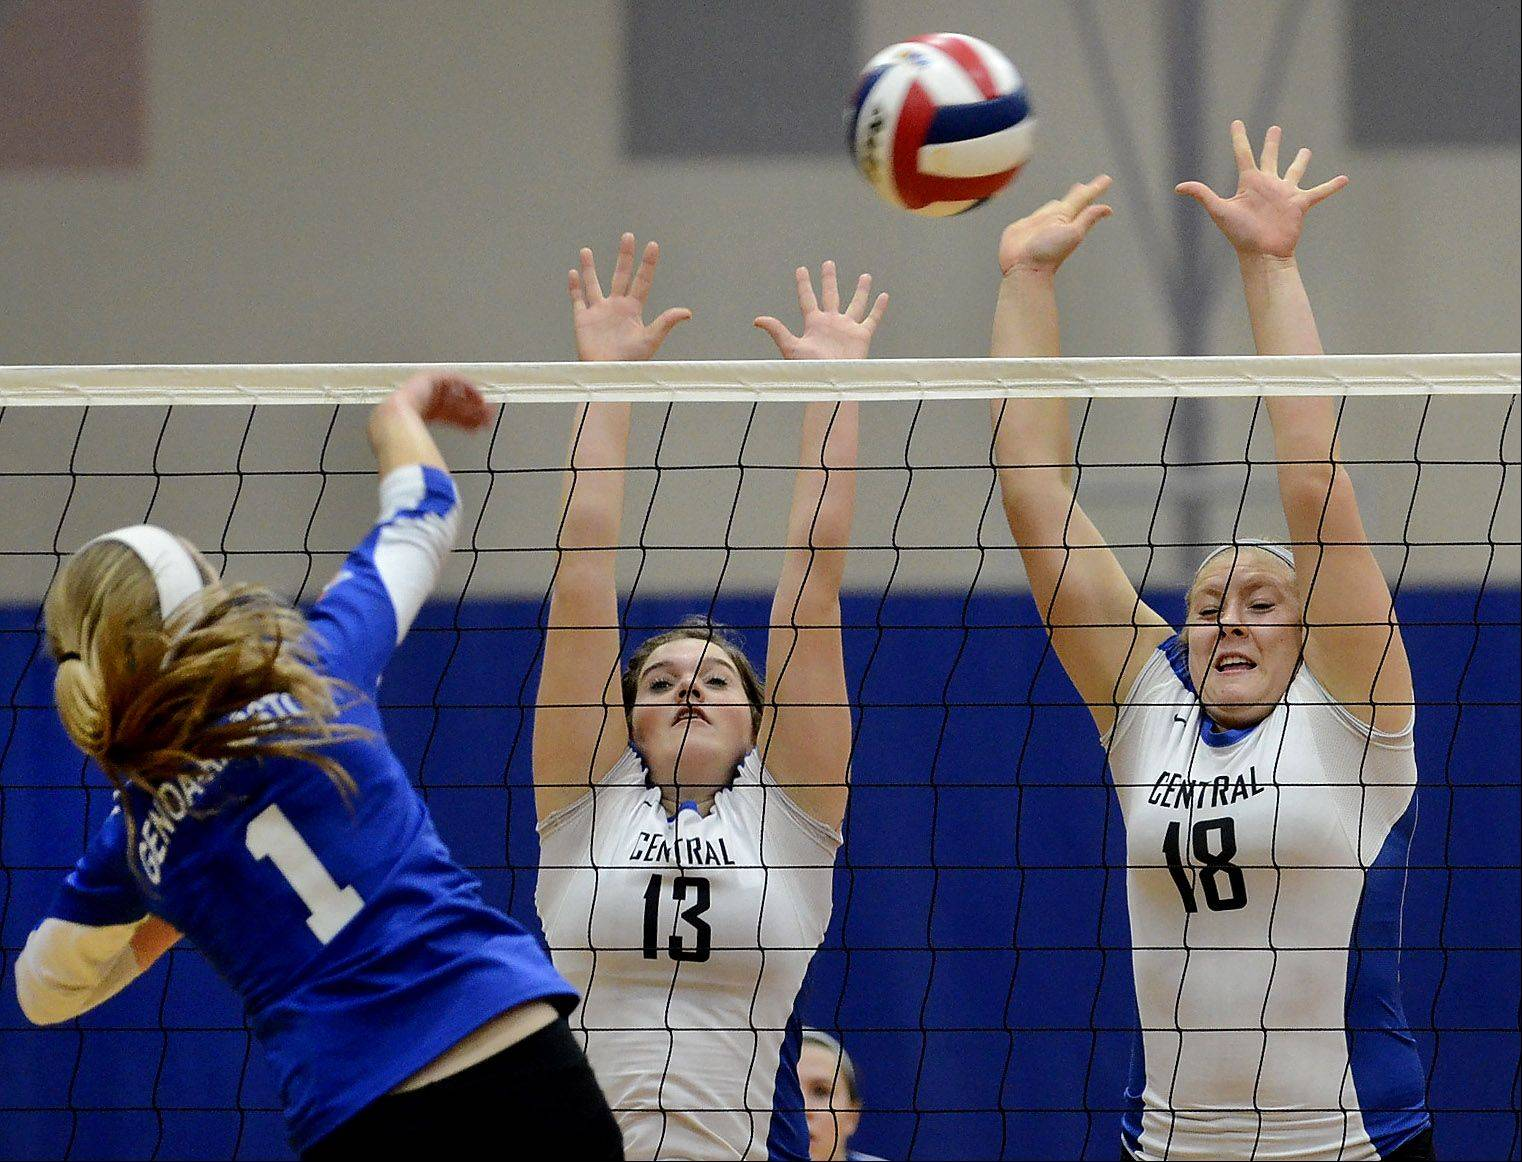 Central's Maddy Barry, left, and Makenna Jensen go for a block of a shot by Bridget Halat, as Burlington Central defeats Genoa-Kingston volleyball for Class 3A regional title.